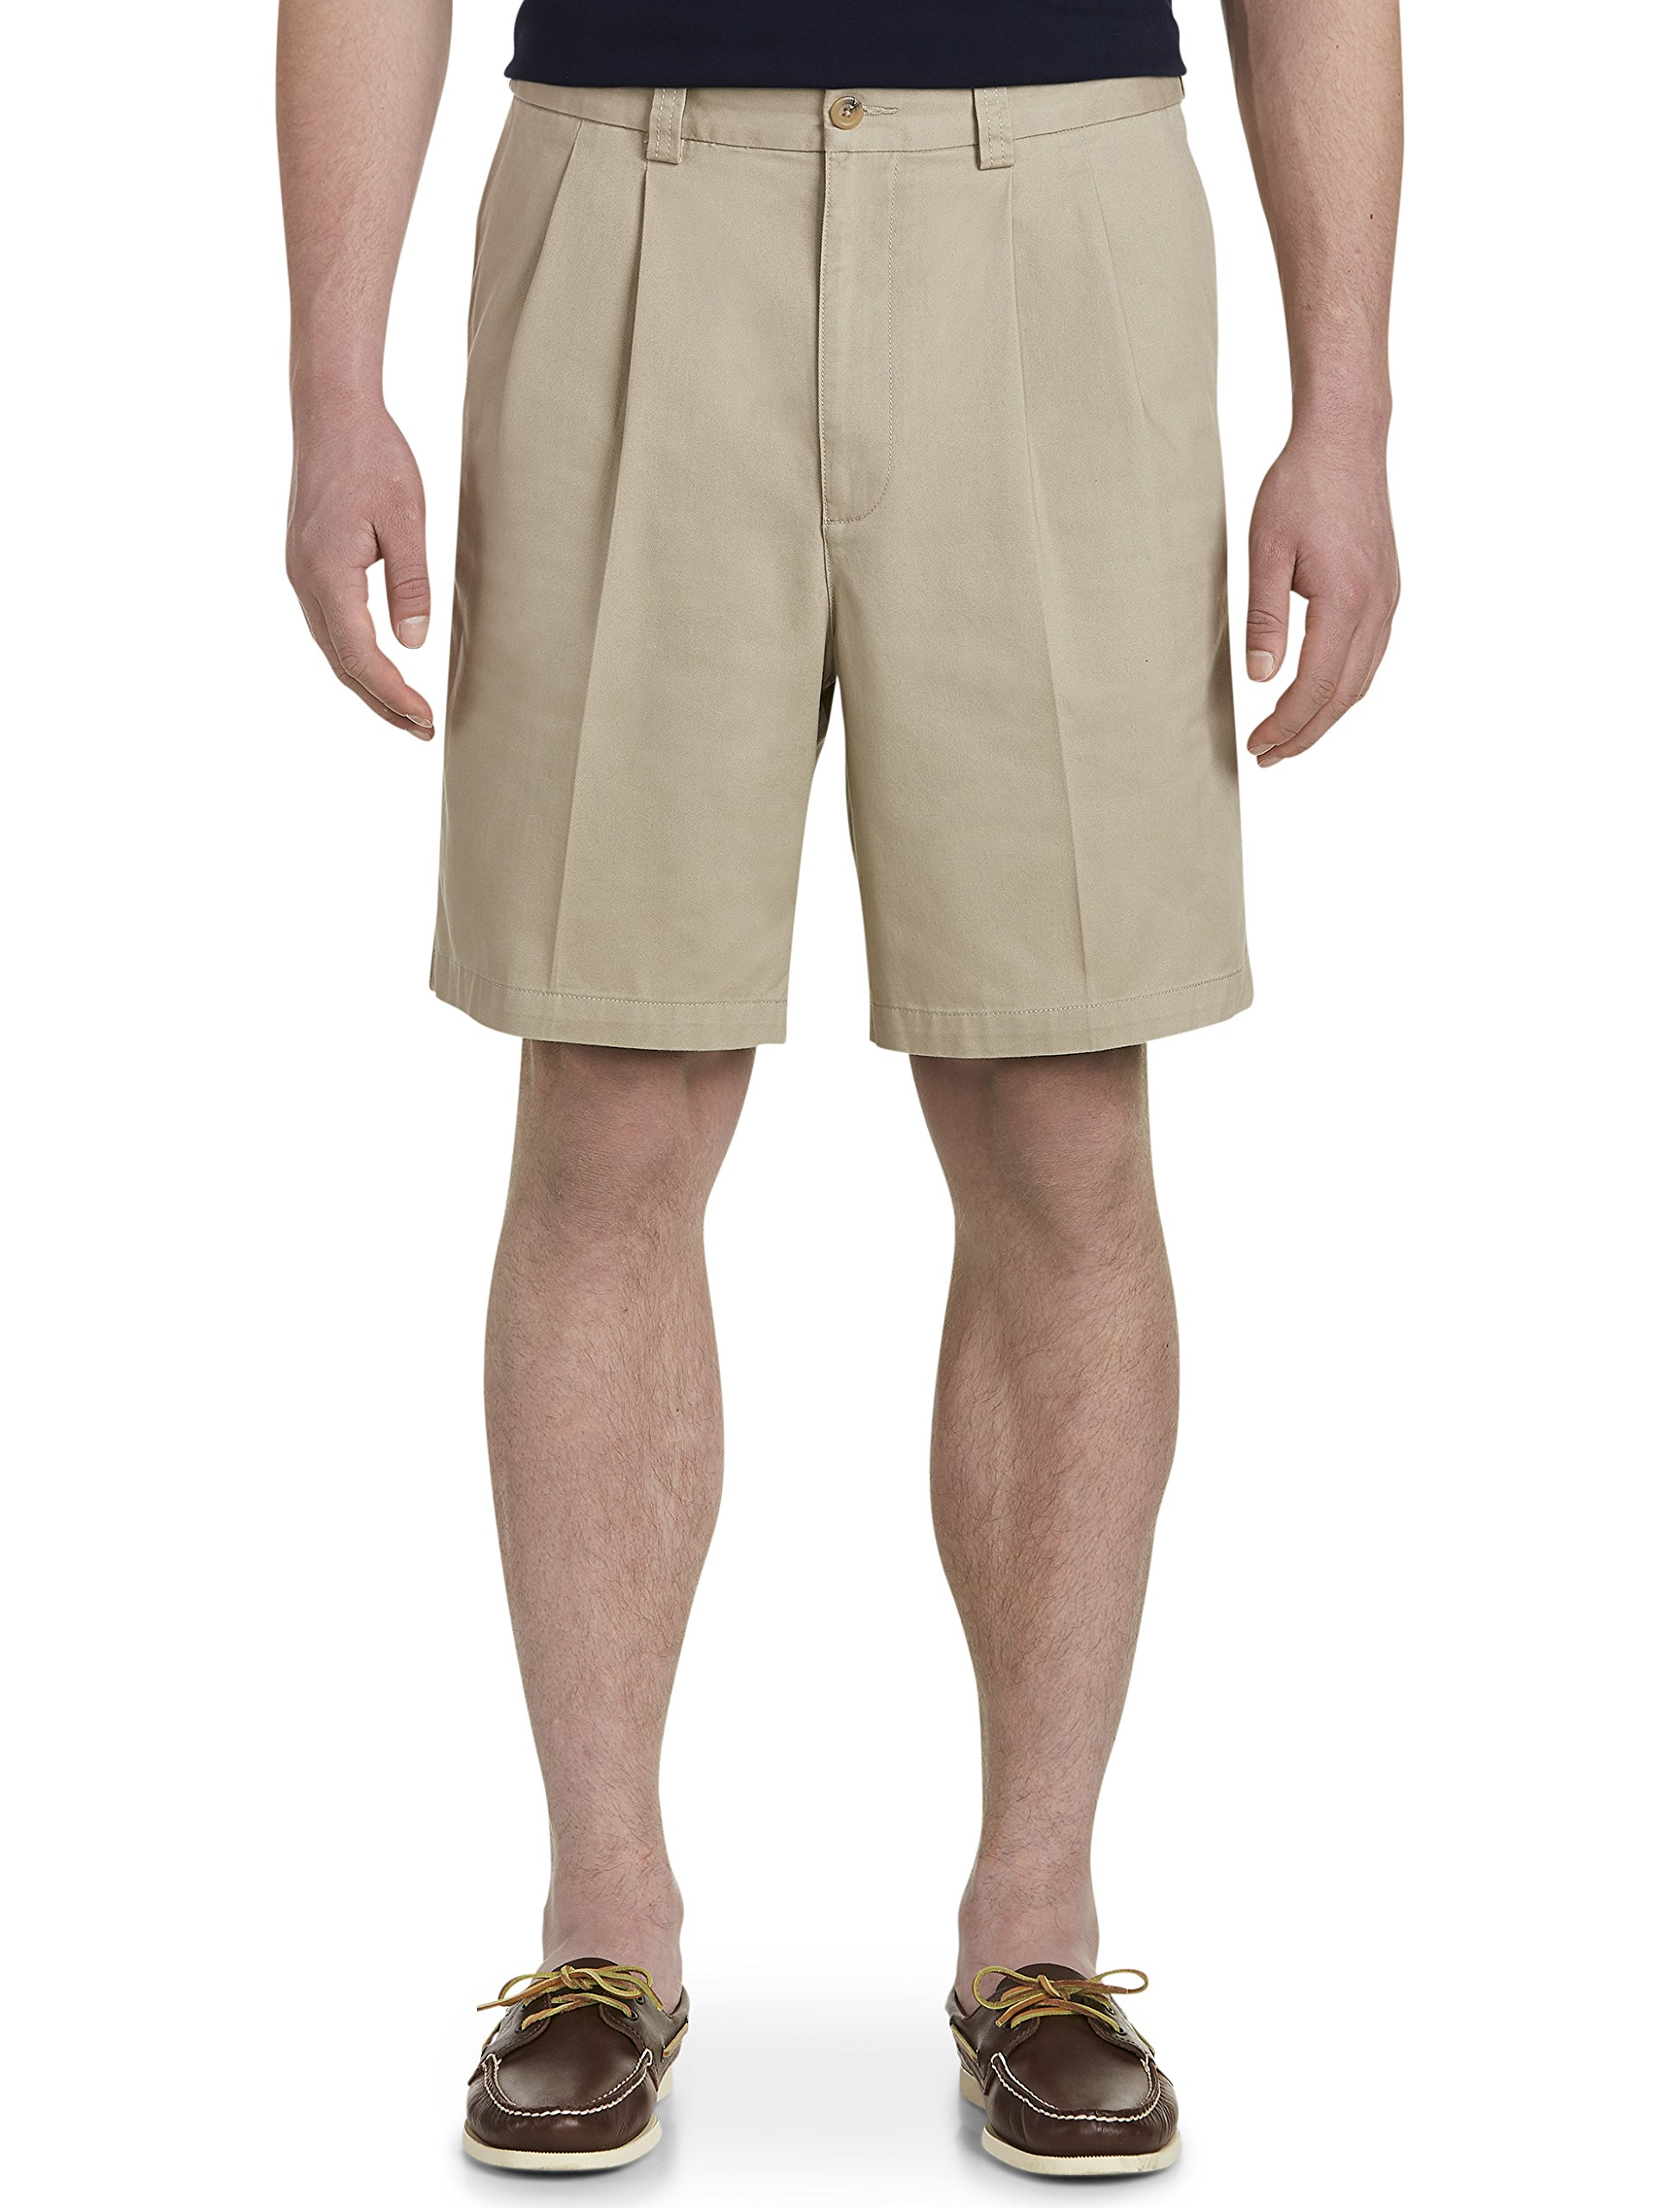 Harbor Bay by DXL Big and Tall Waist-Relaxer Pleated Twill Shorts (48 Reg, Khaki)